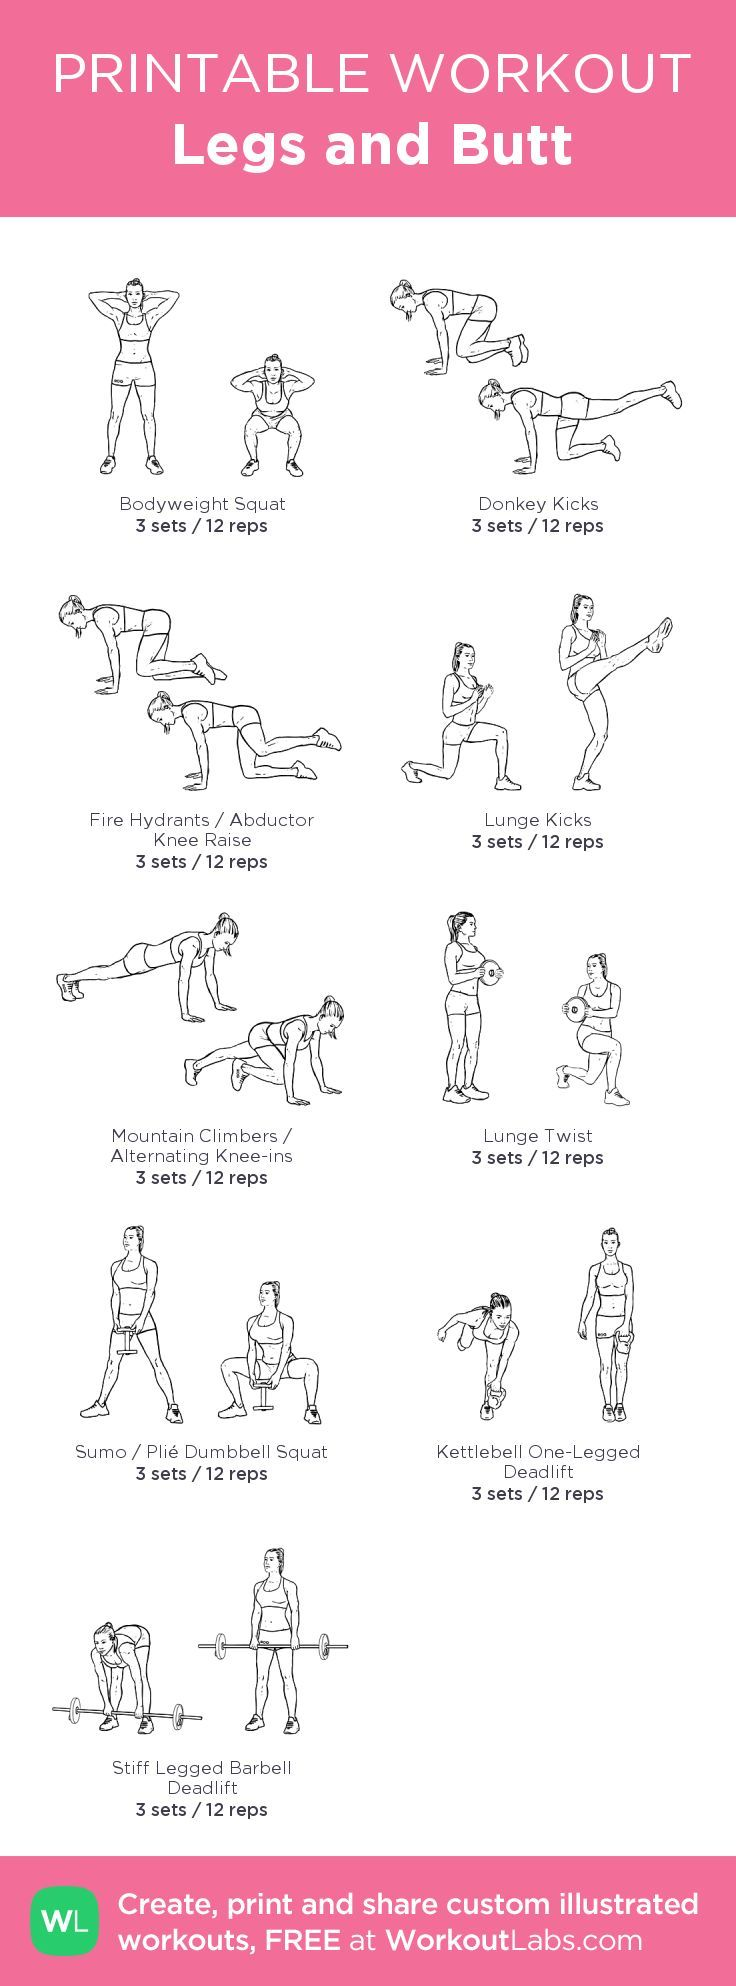 Legs and Butt –my custom workout created at WorkoutLabs.com • Click throug…